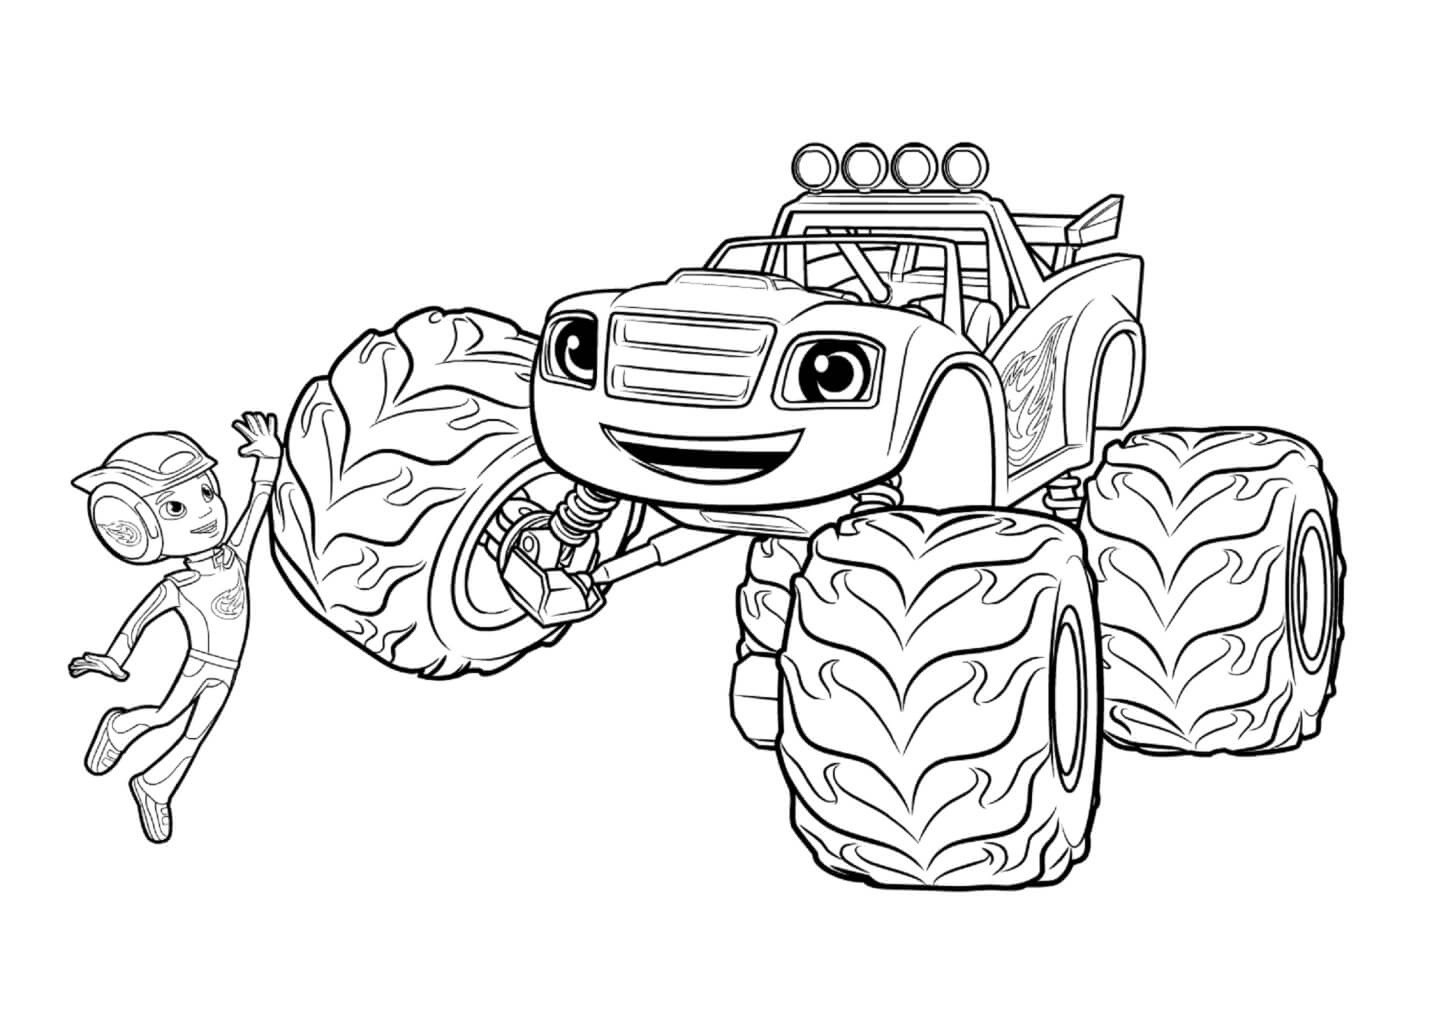 Blaze Coloring Pages Coloring Pages Blaze And The Monster Machines Free Collection New 15